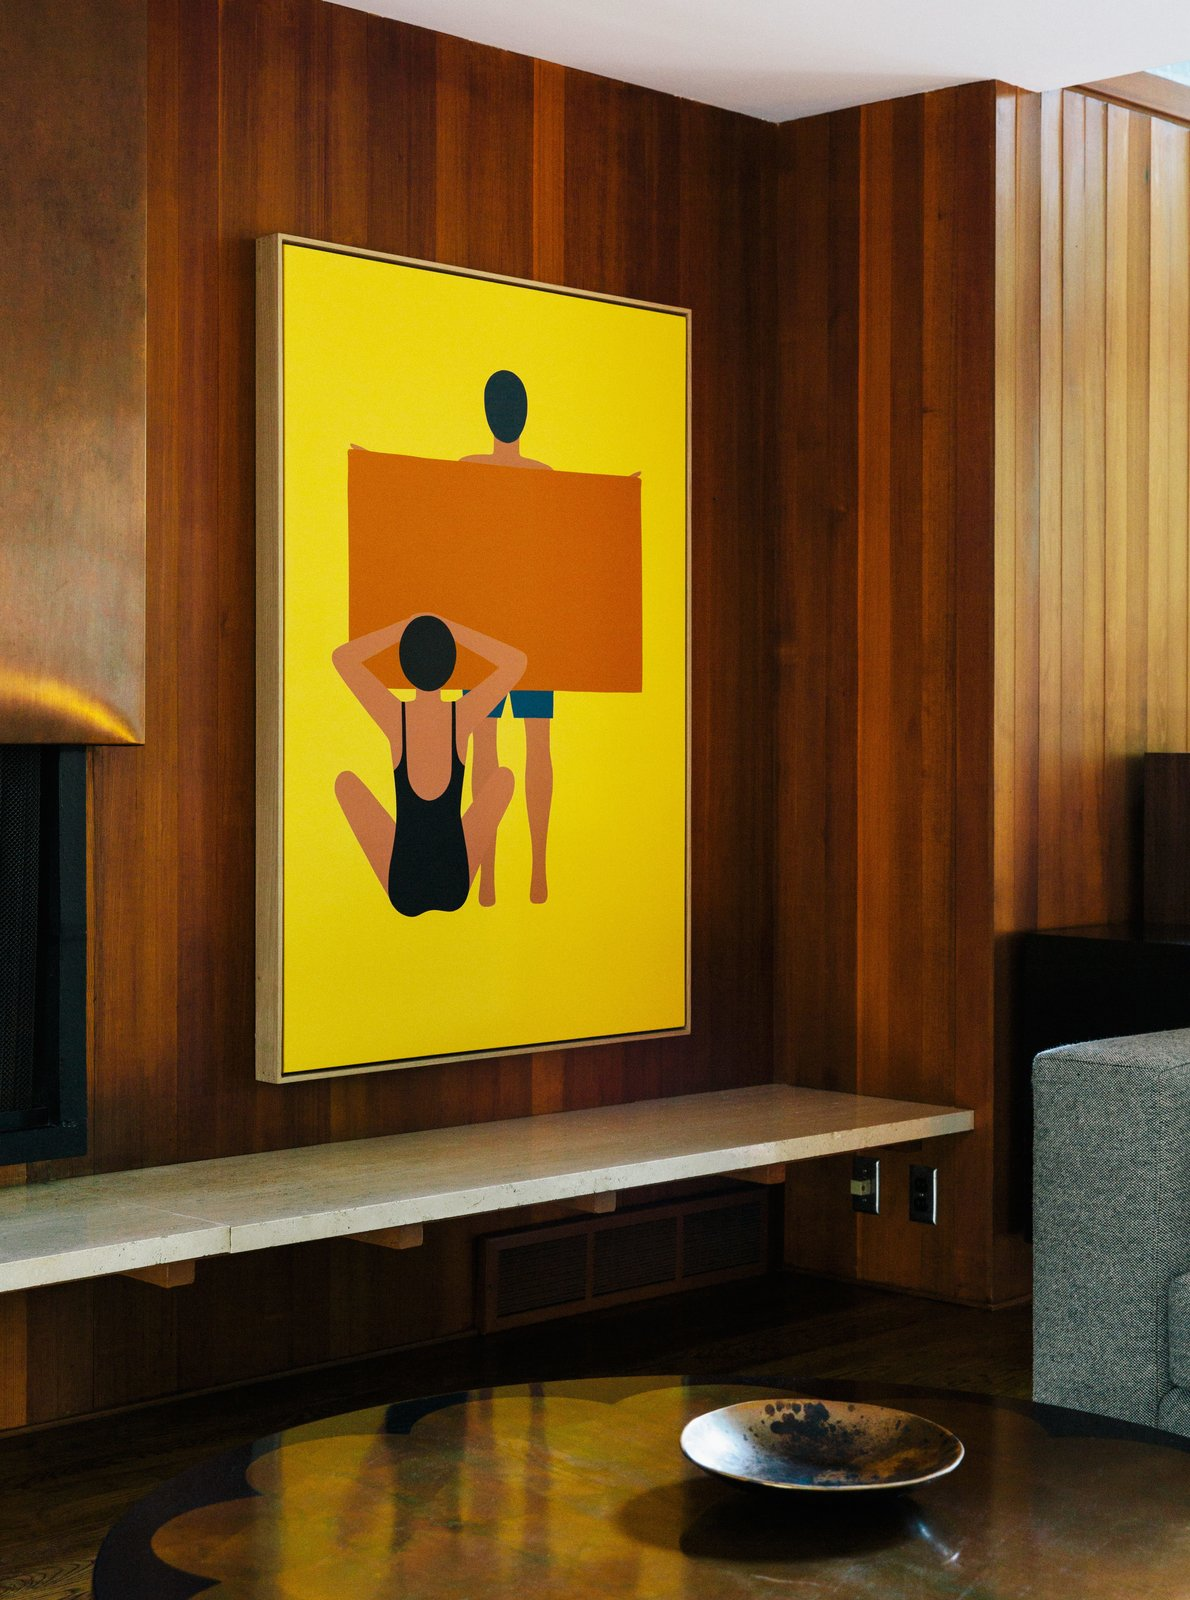 "In the living room, the painting is by Geoff McFetridge and the wood paneling is original to the house. ""Jewel-y color and simple shapes—they feel right in this house,"" says interior designer Jessica Helgerson. Wood Paneling Loses its Dated Reputation with This Renovation of a 1959 Portland Gem - Photo 4 of 11"